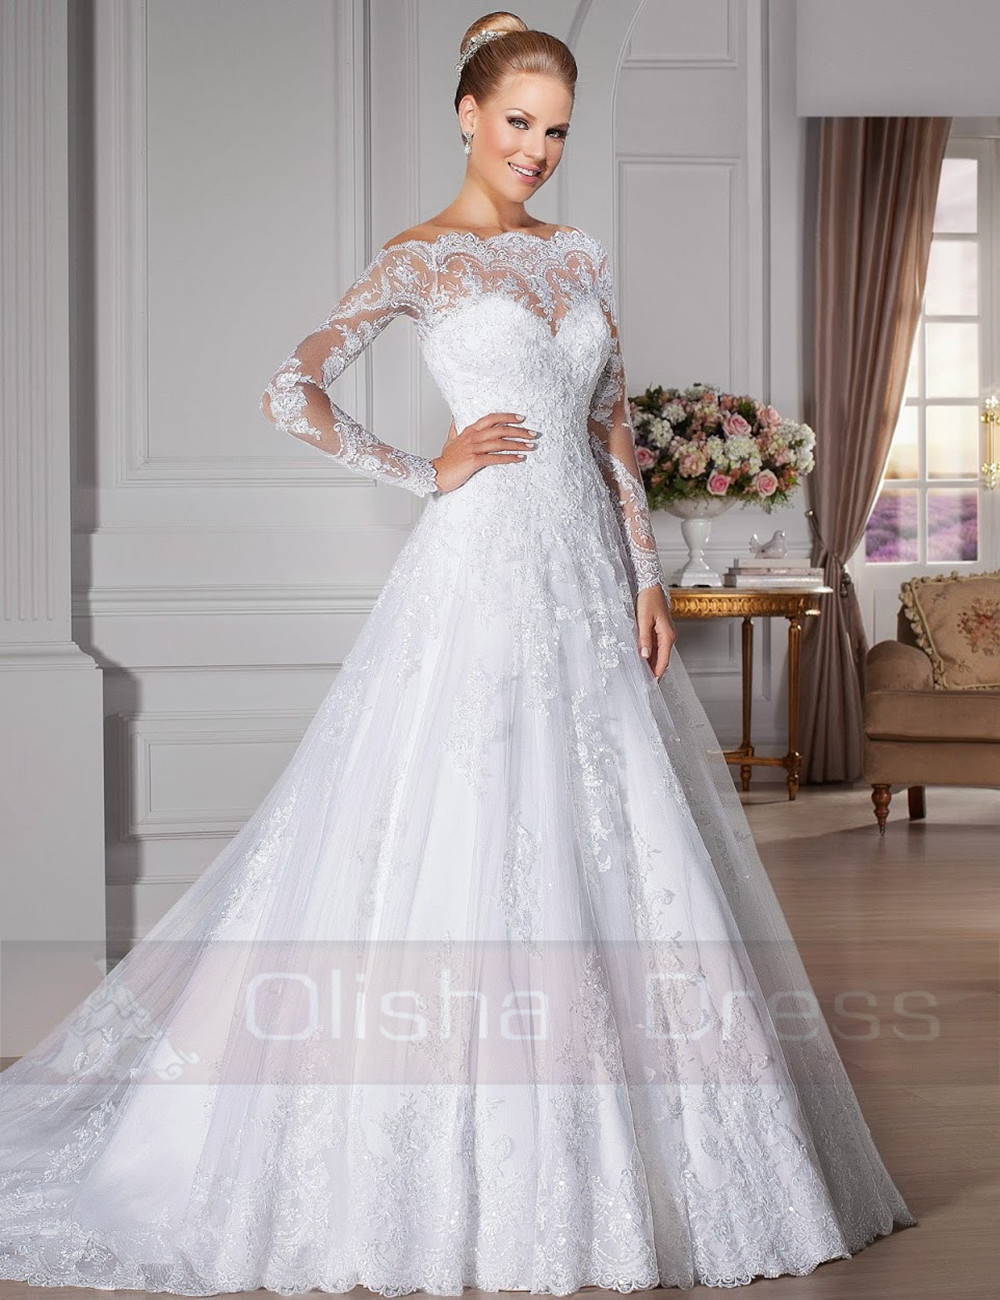 wedding gown lace overlay sweetheart lace wedding dress Bridal Gowns With Lace Overlay